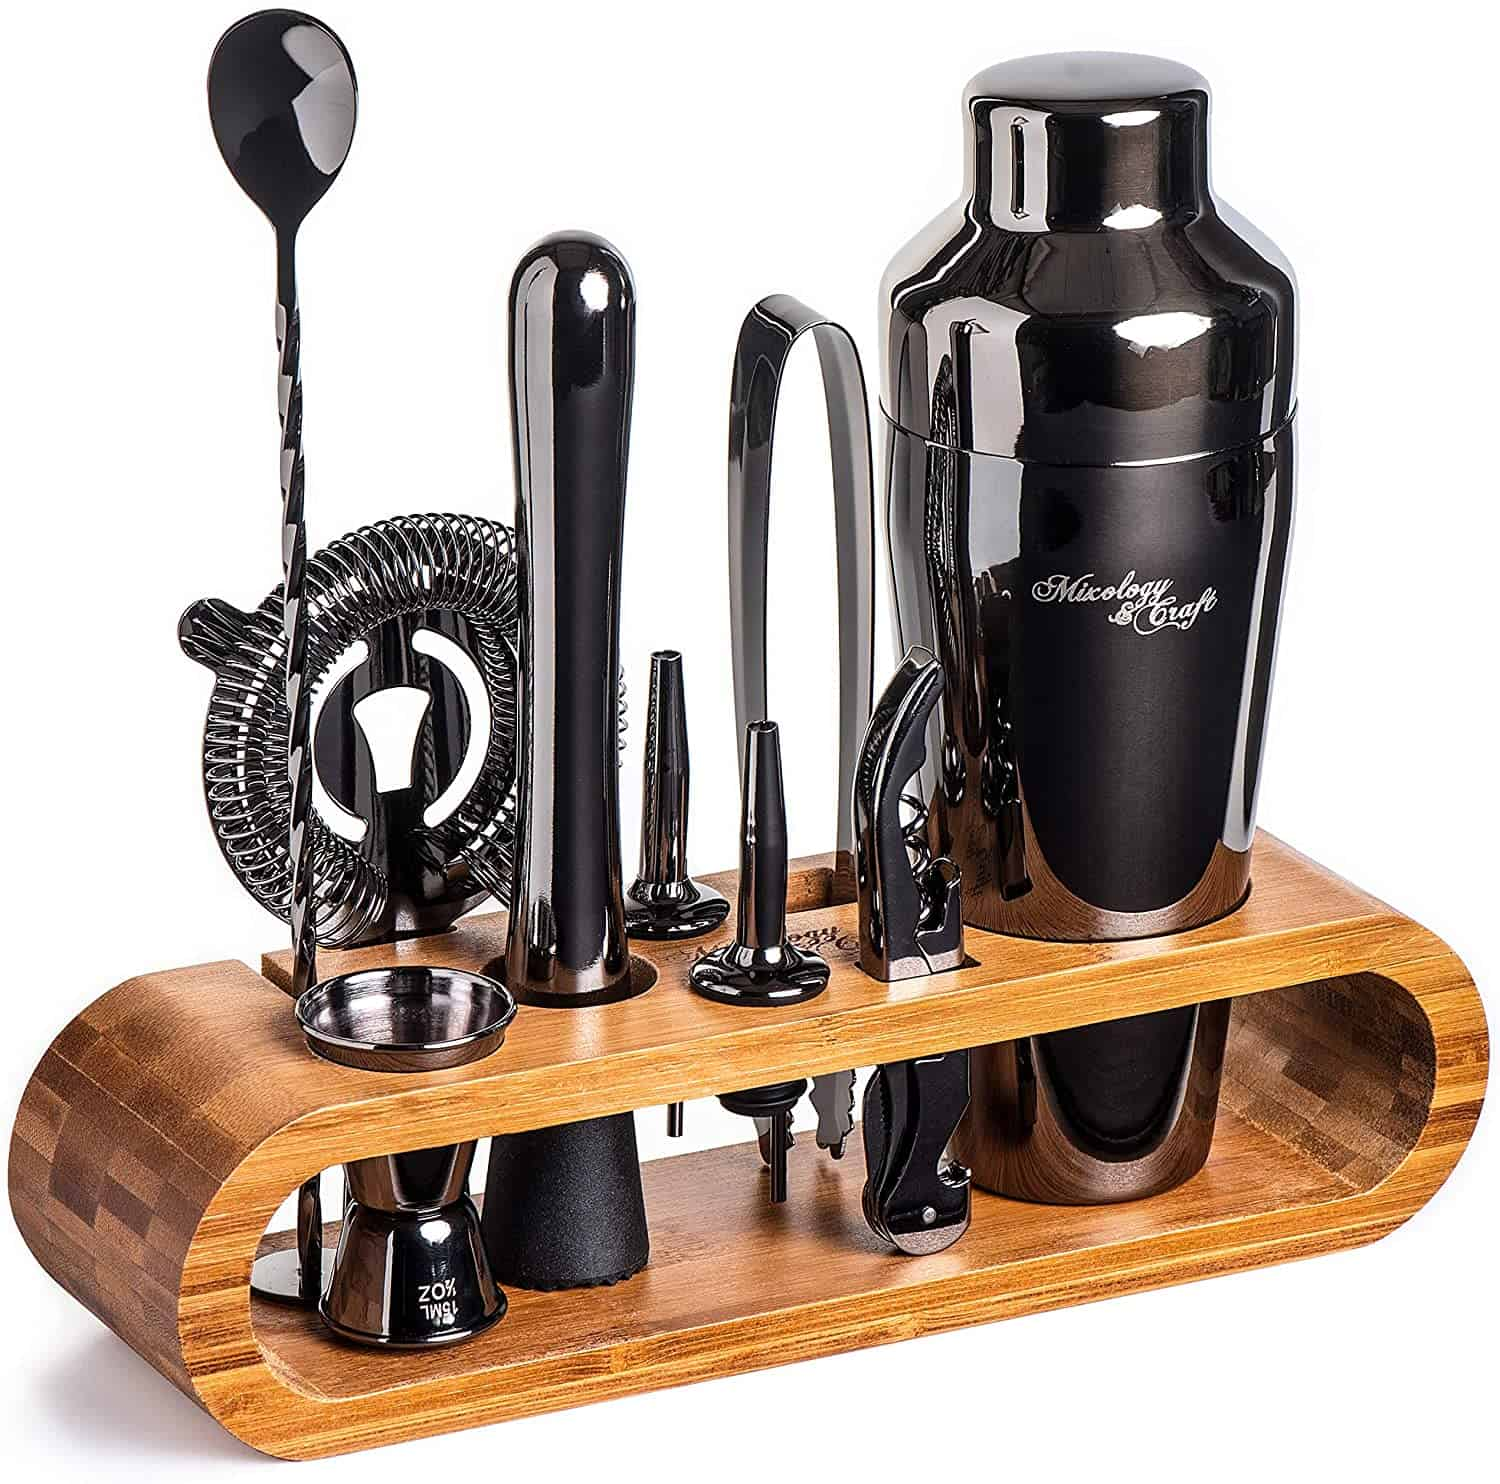 Cocktail equipment in a bamboo holder.